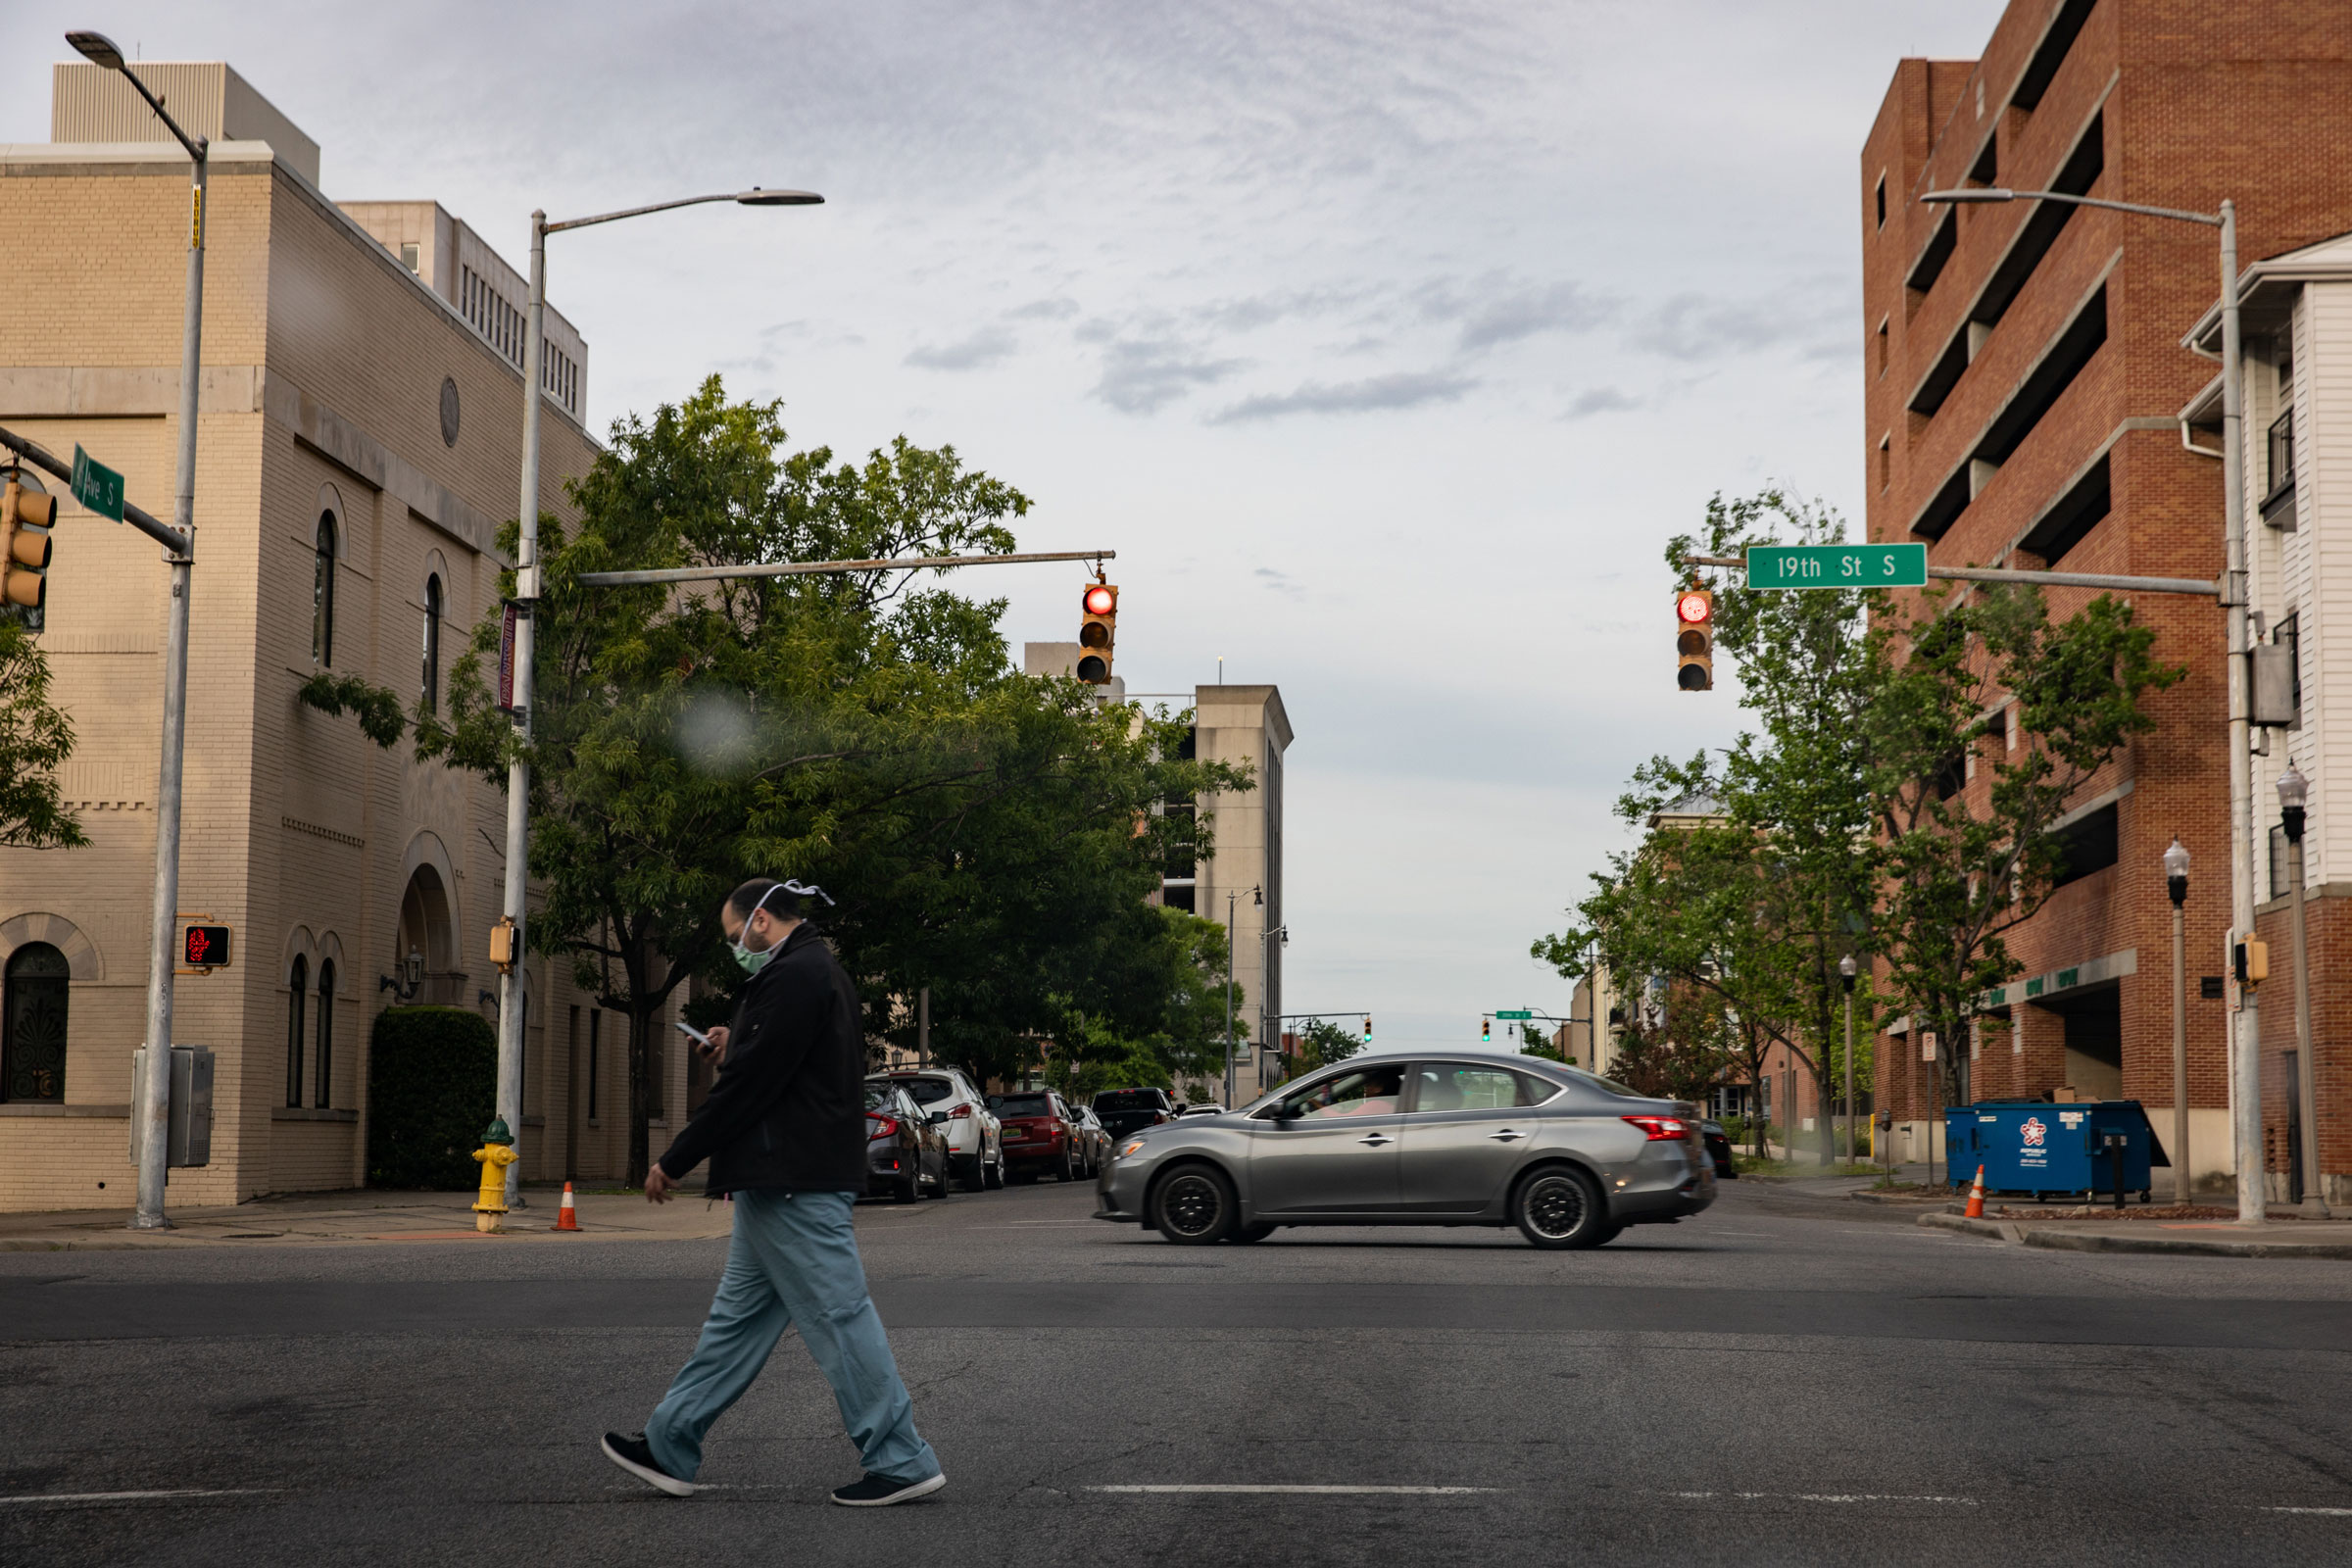 A pedestrian wearing scrubs and a mask crosses a street in Birmingham, Alabama, on April 28.